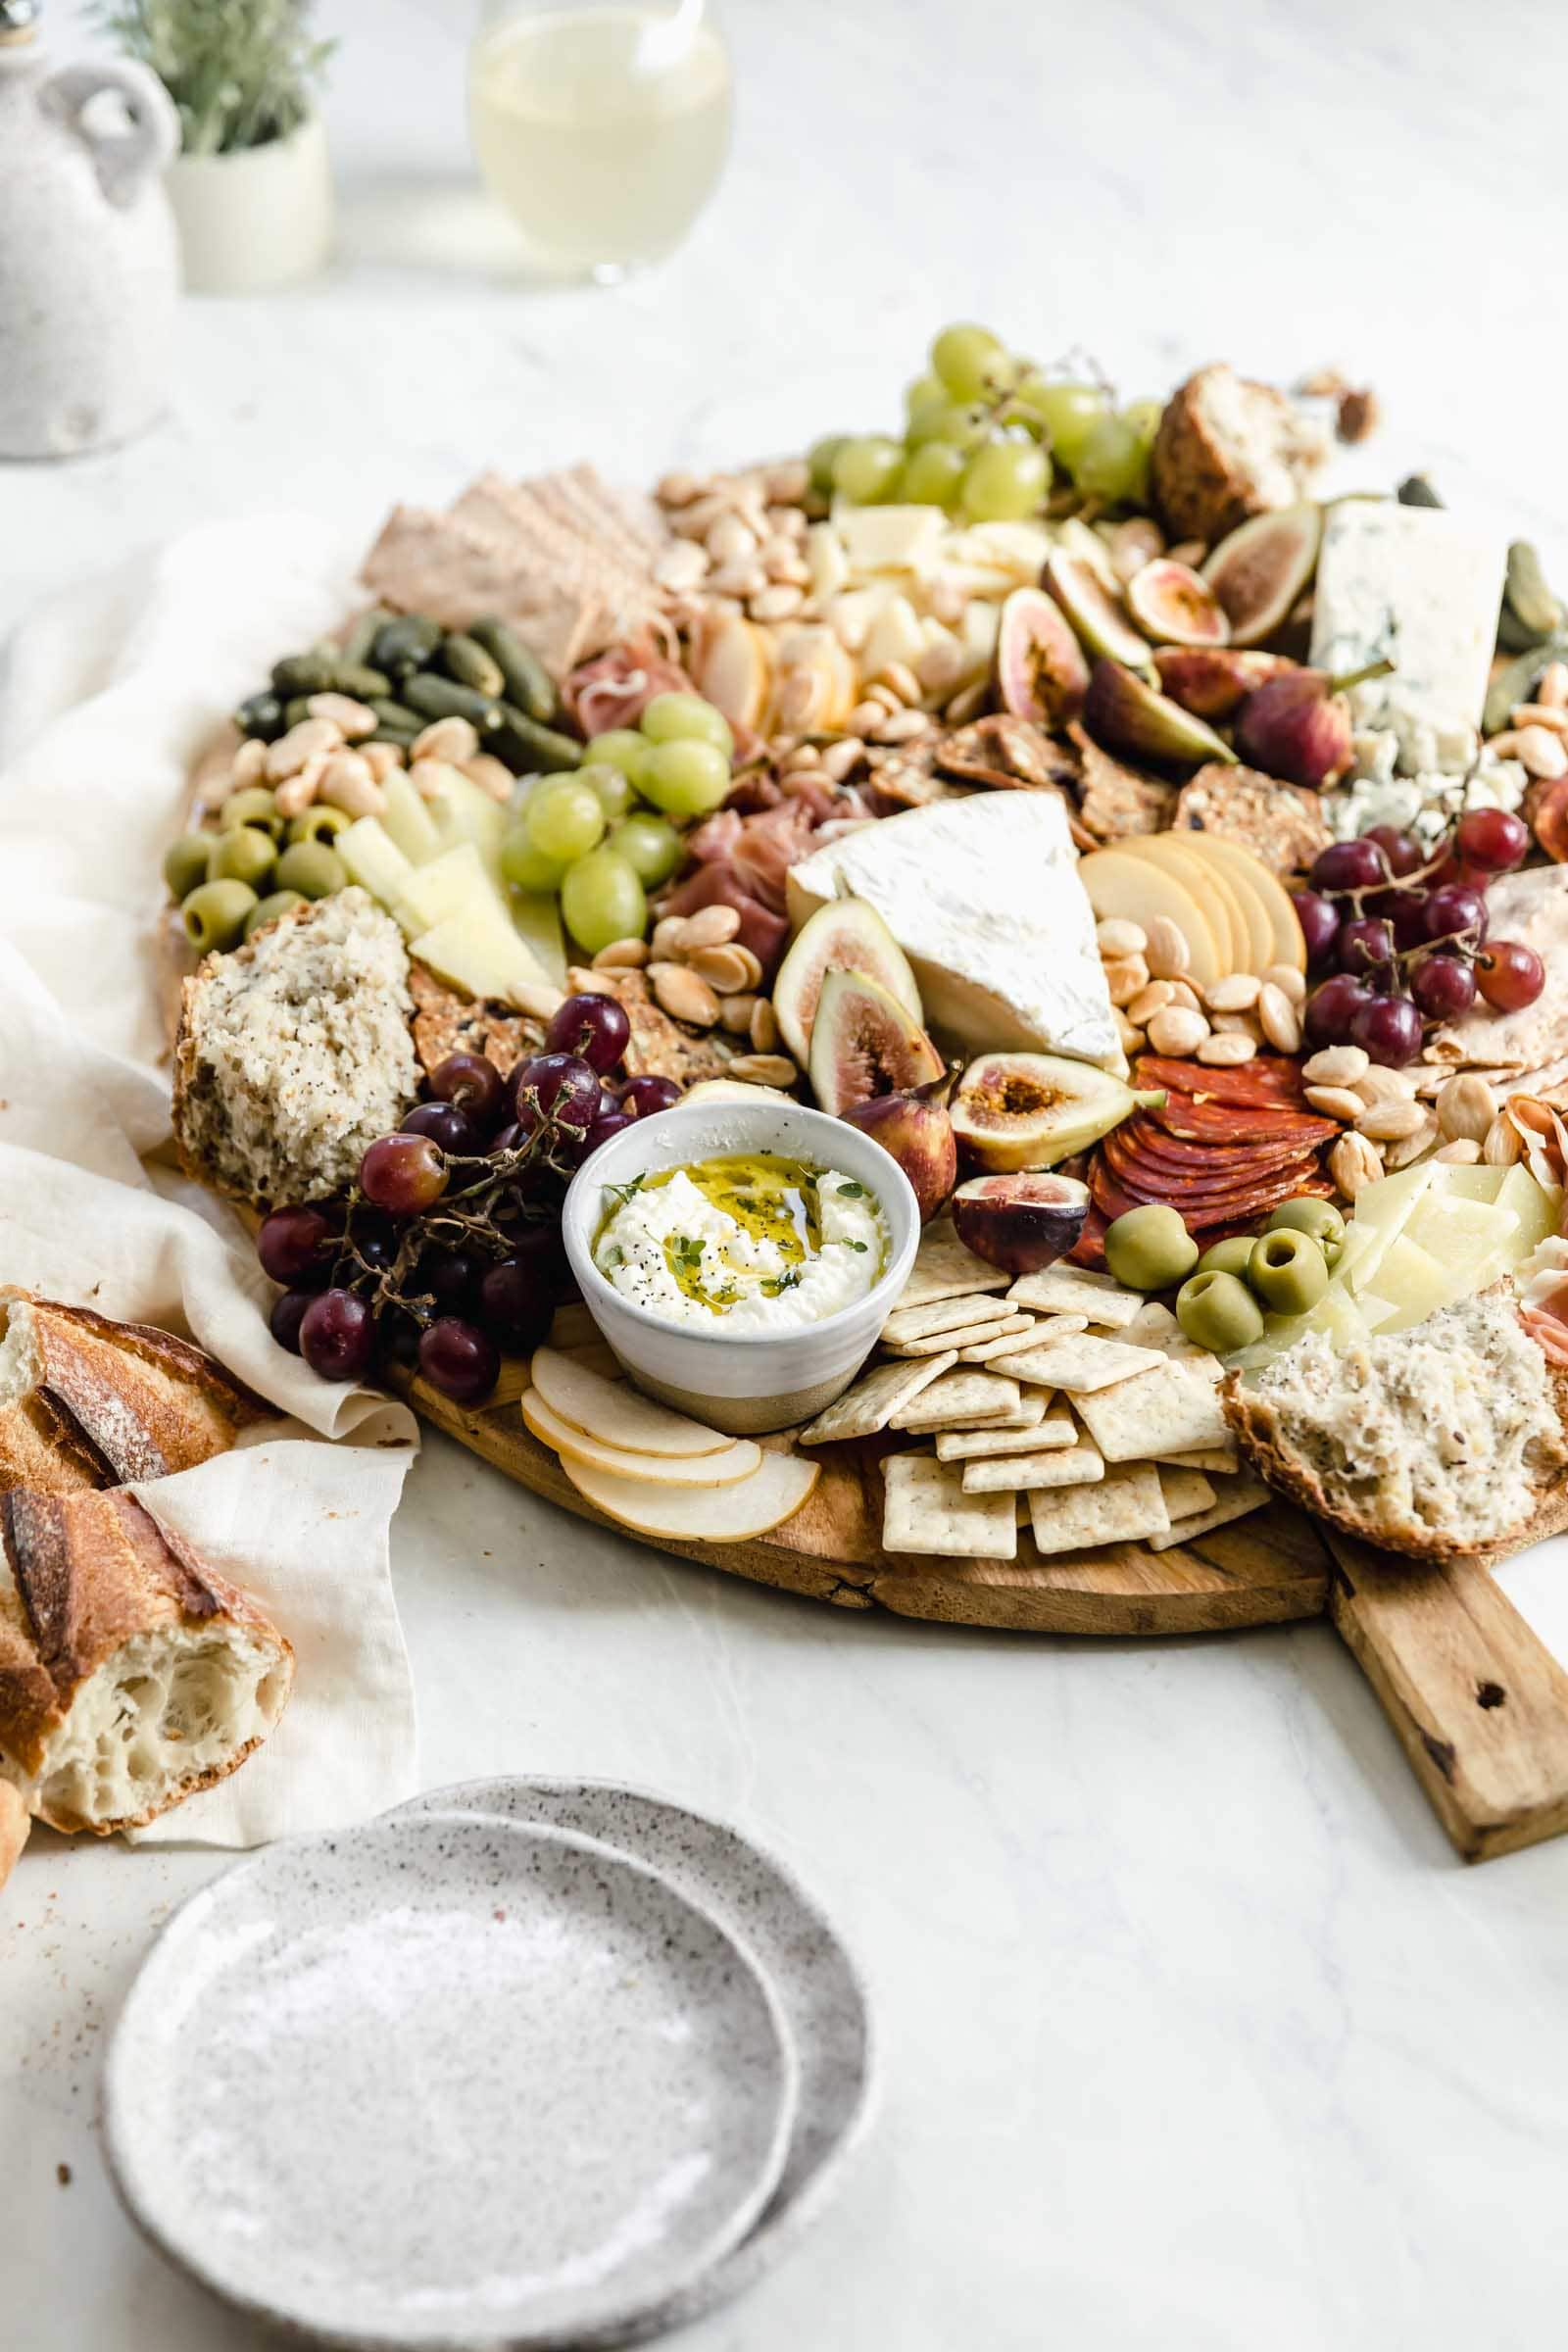 loaded cheeseboard on wooden board with wine